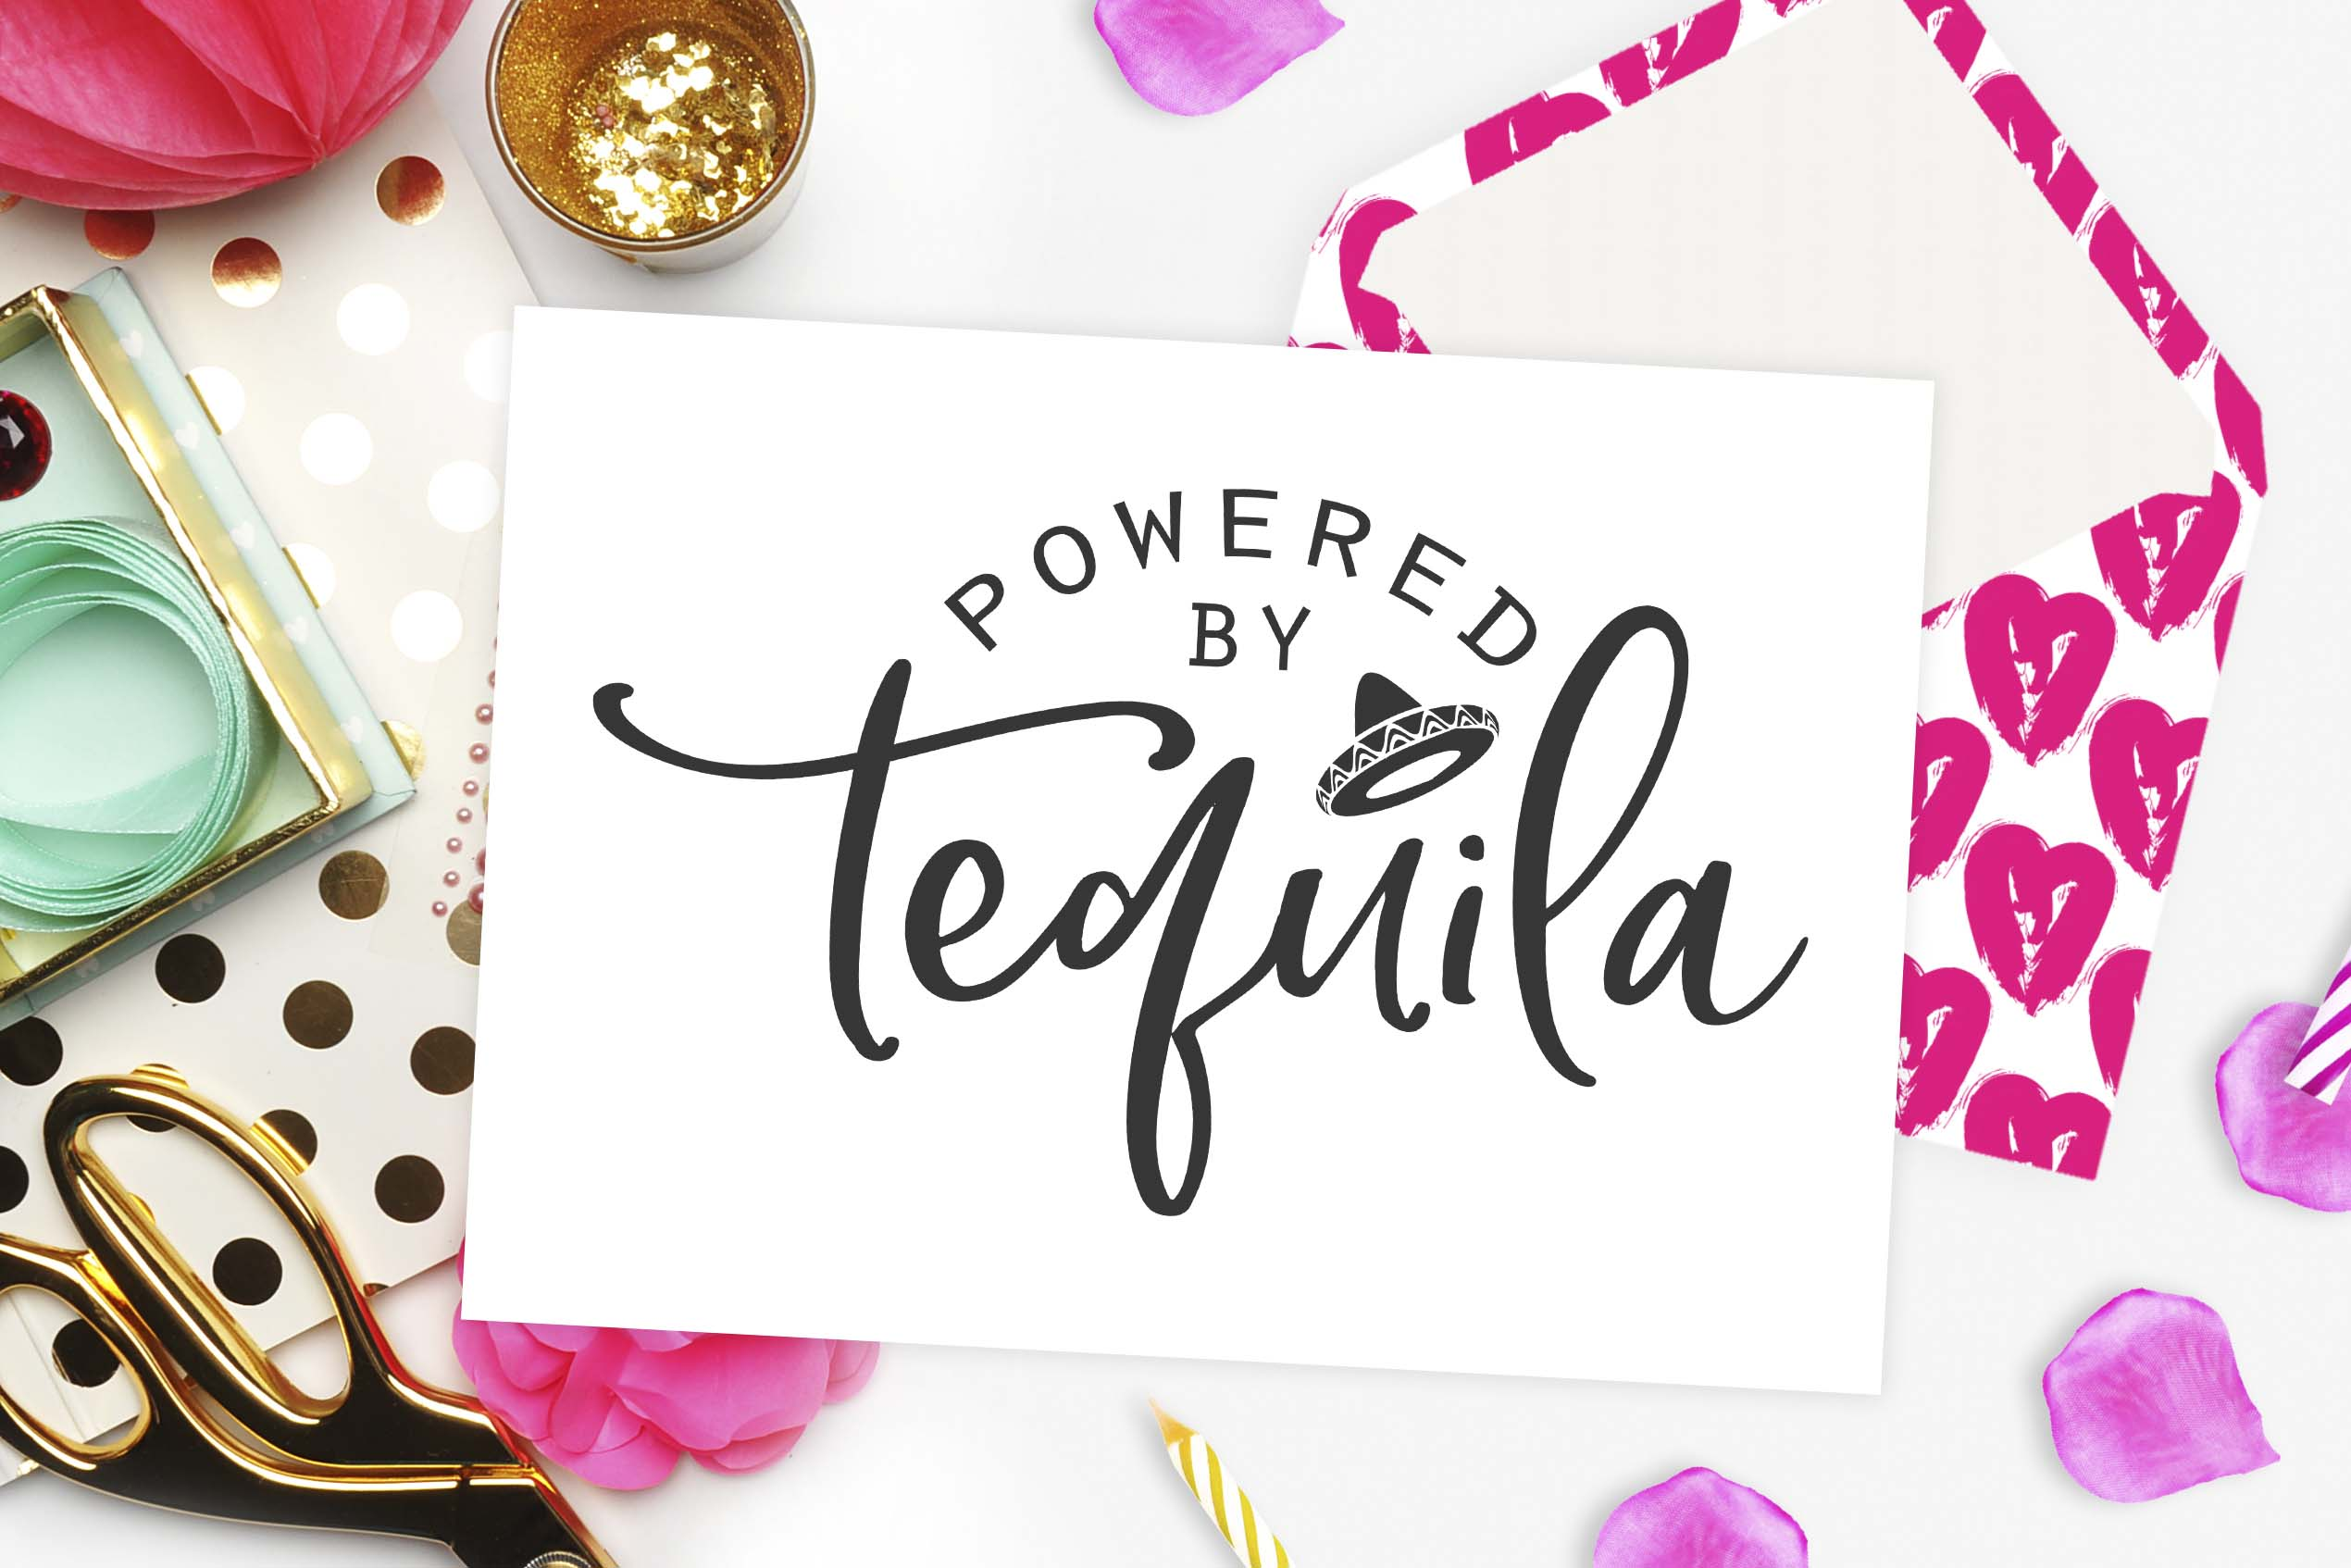 Powered by Tequila Cutting File Graphic Crafts By TheBlackCatPrints